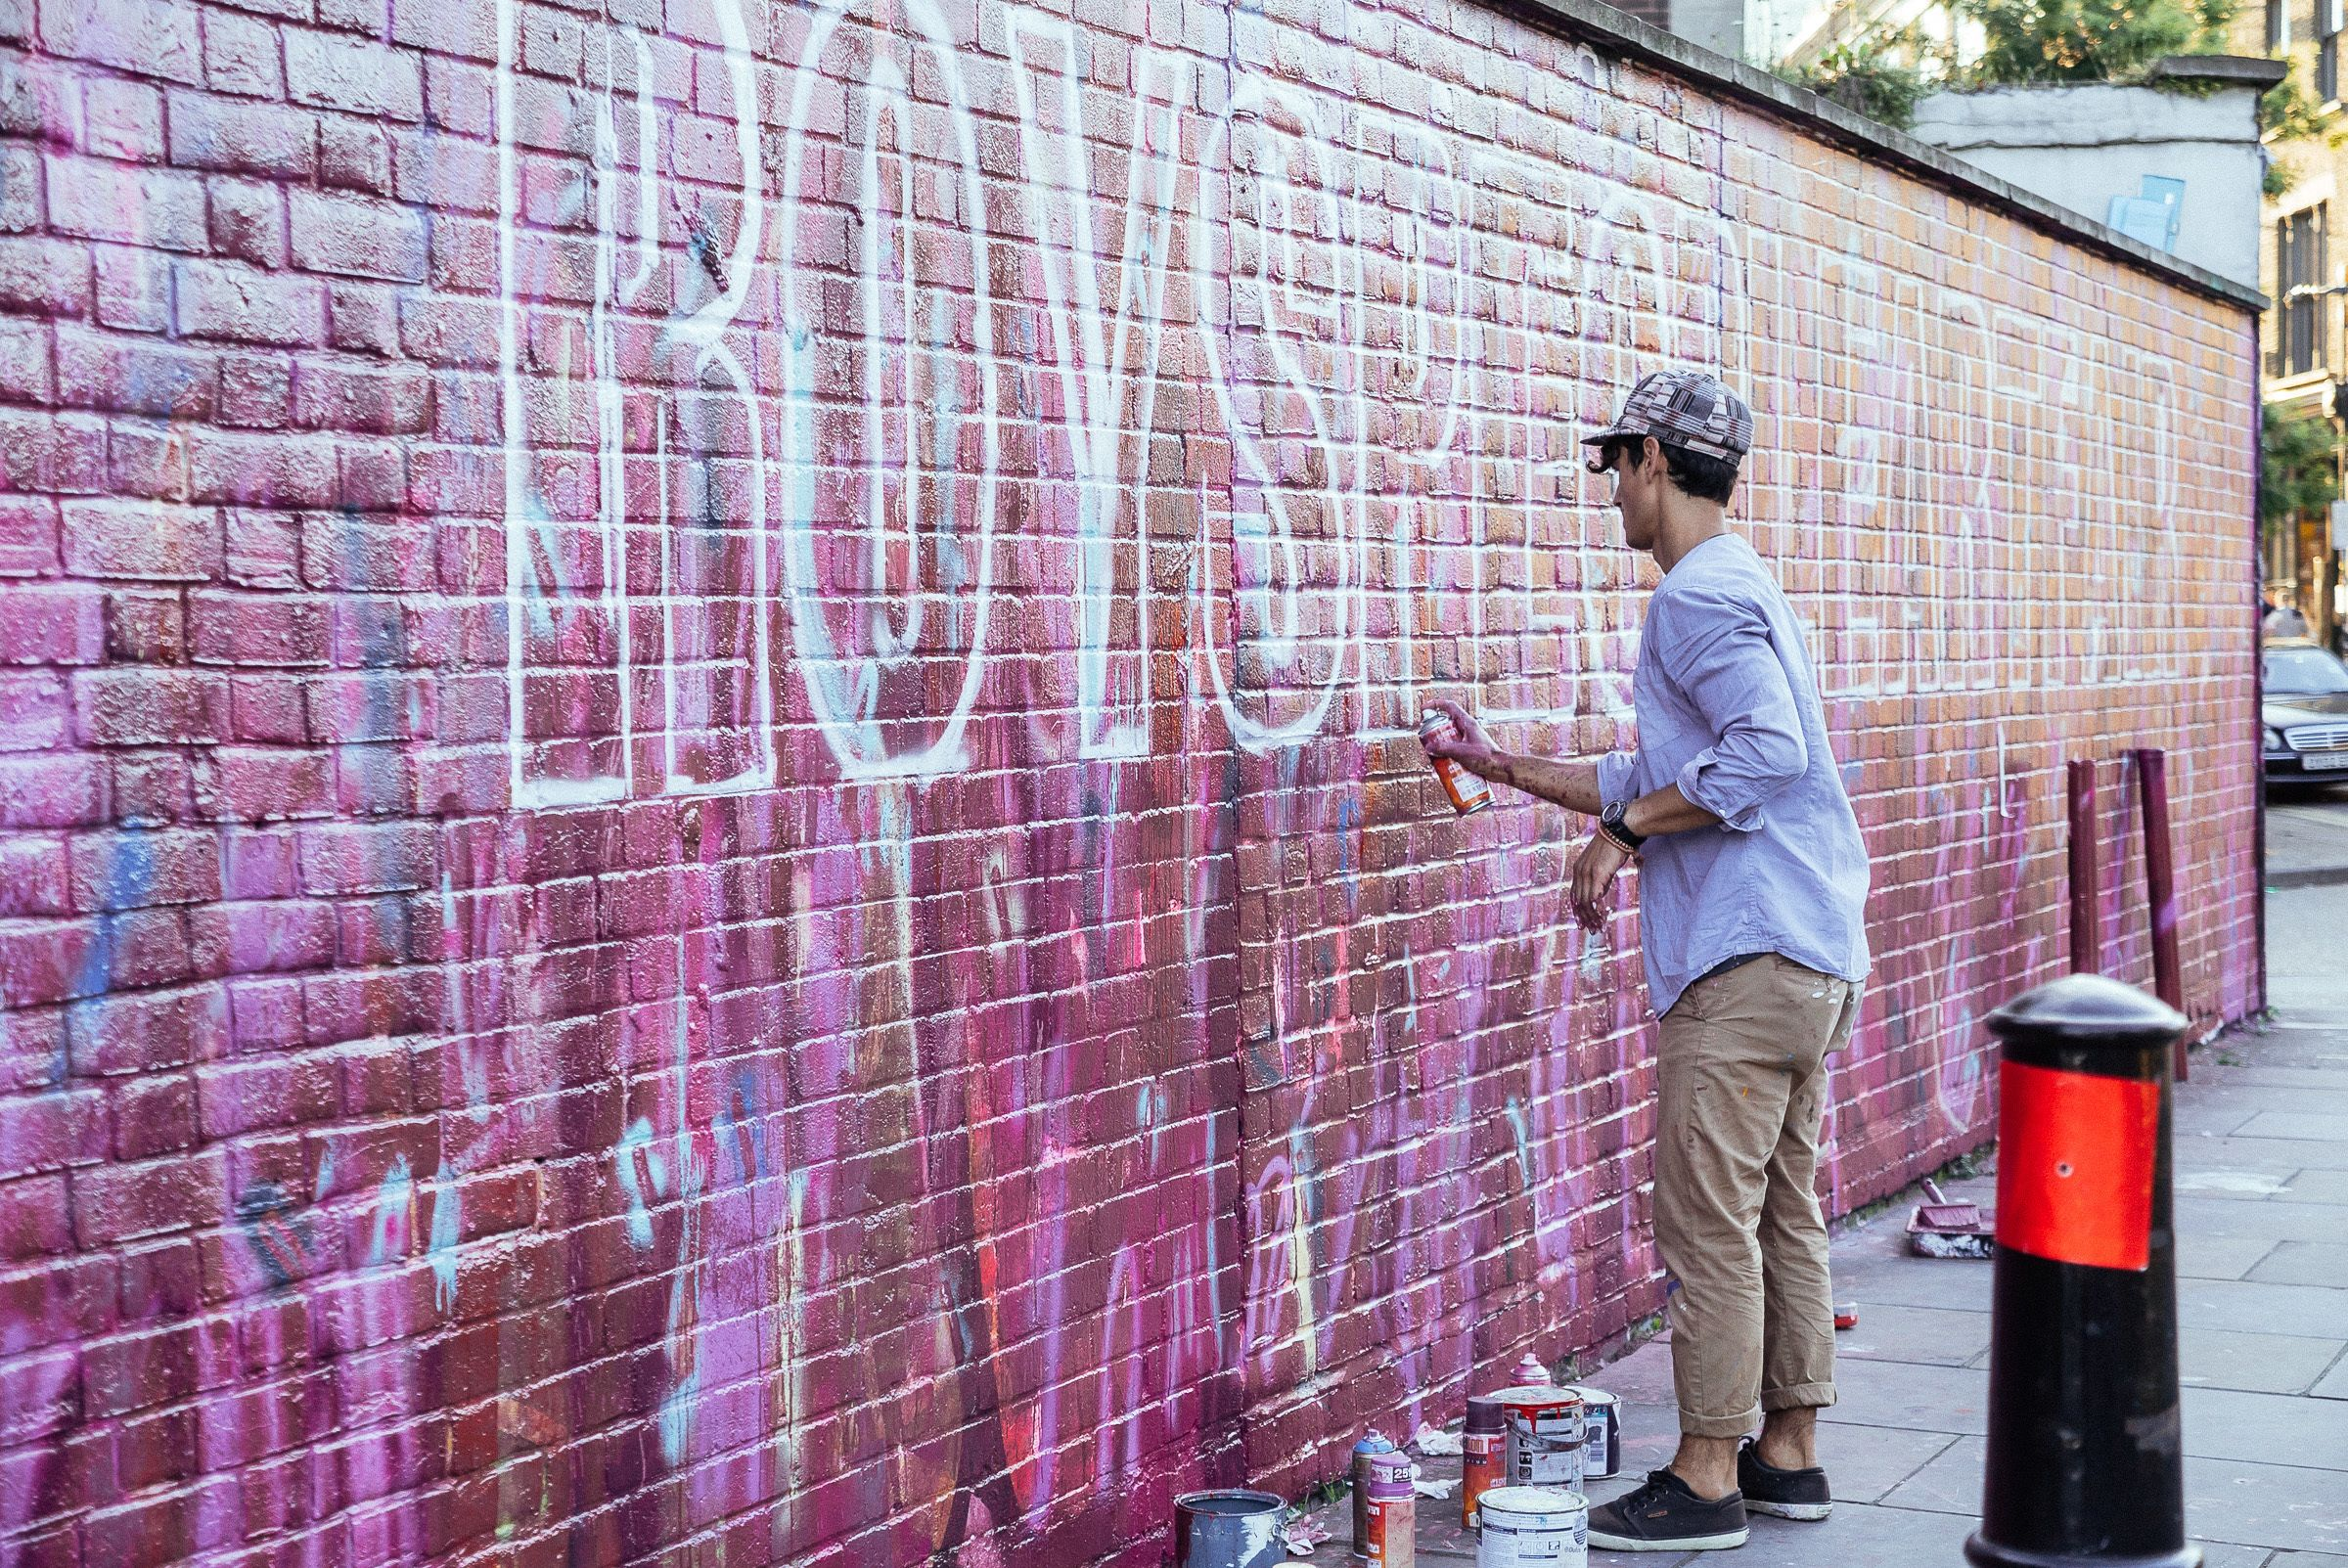 Person spray painting on a wall